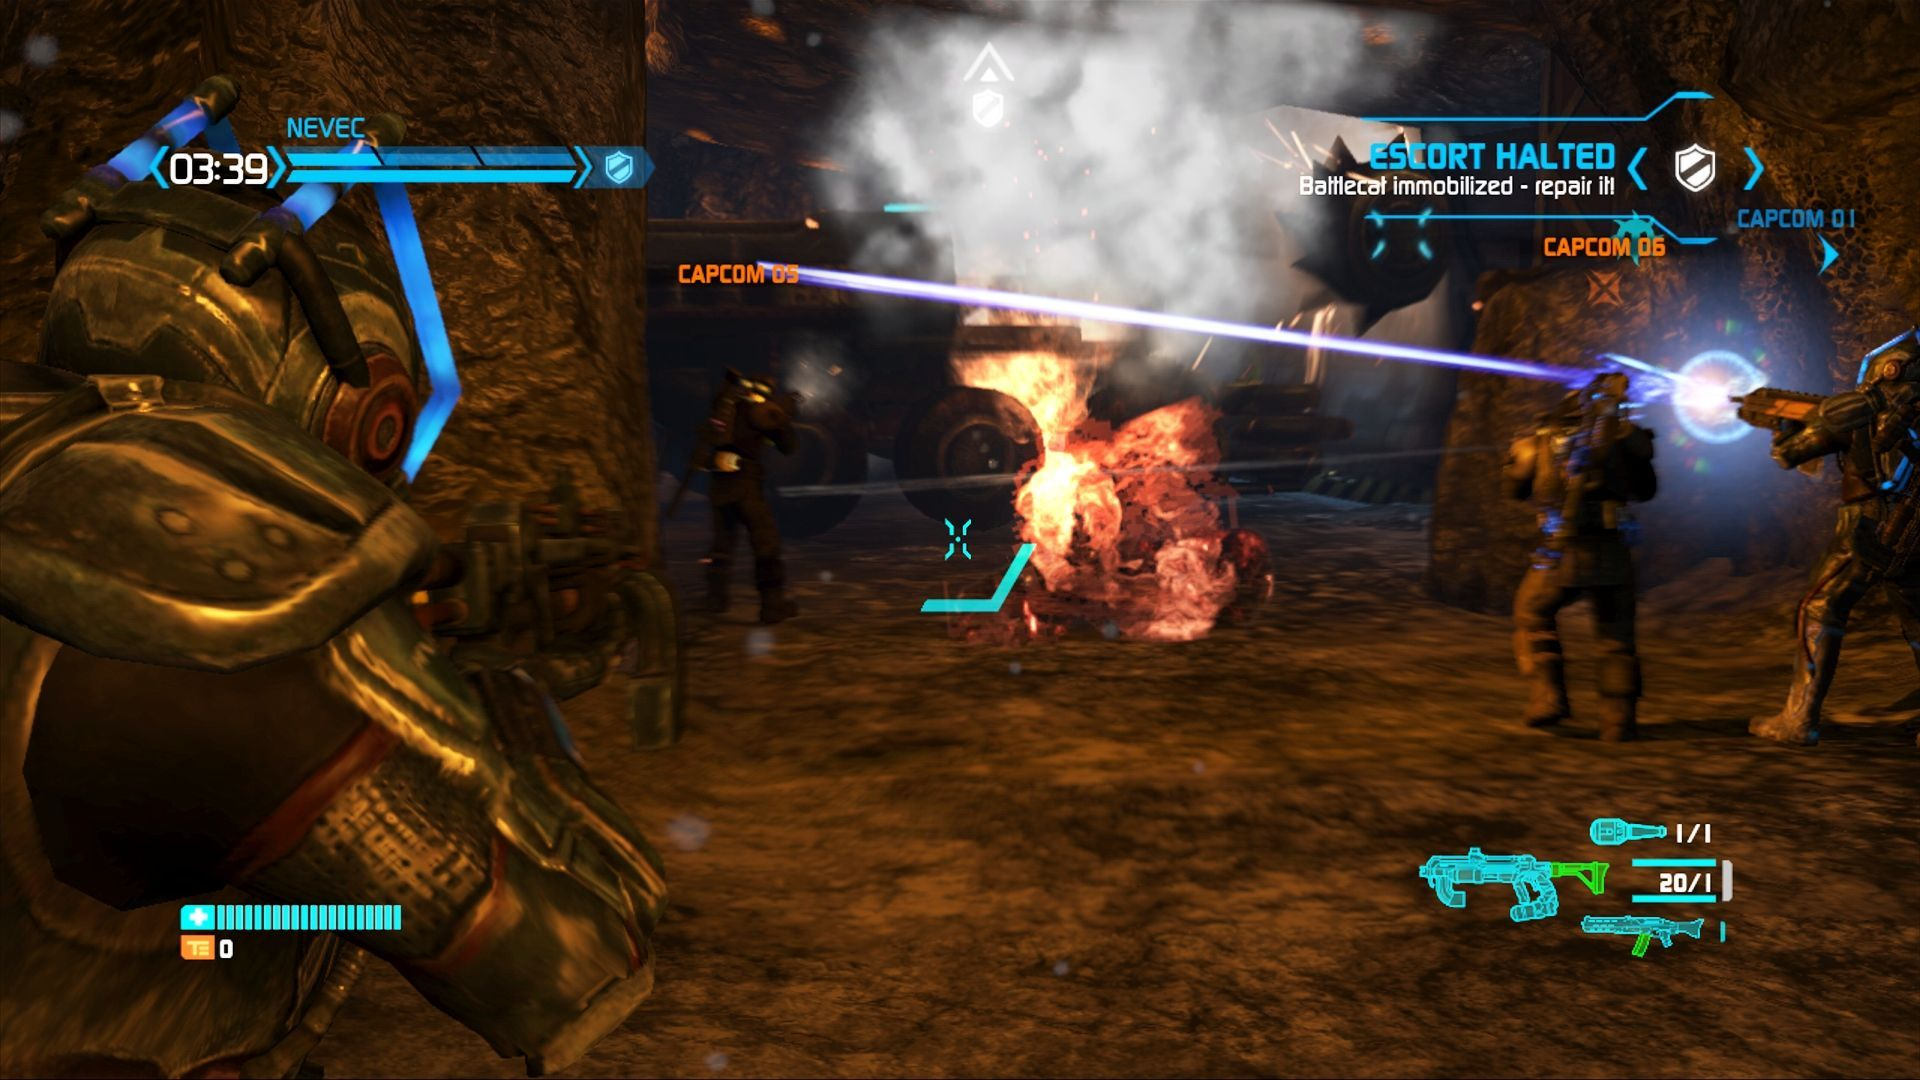 Lost Planet 3 multiplayer - 21